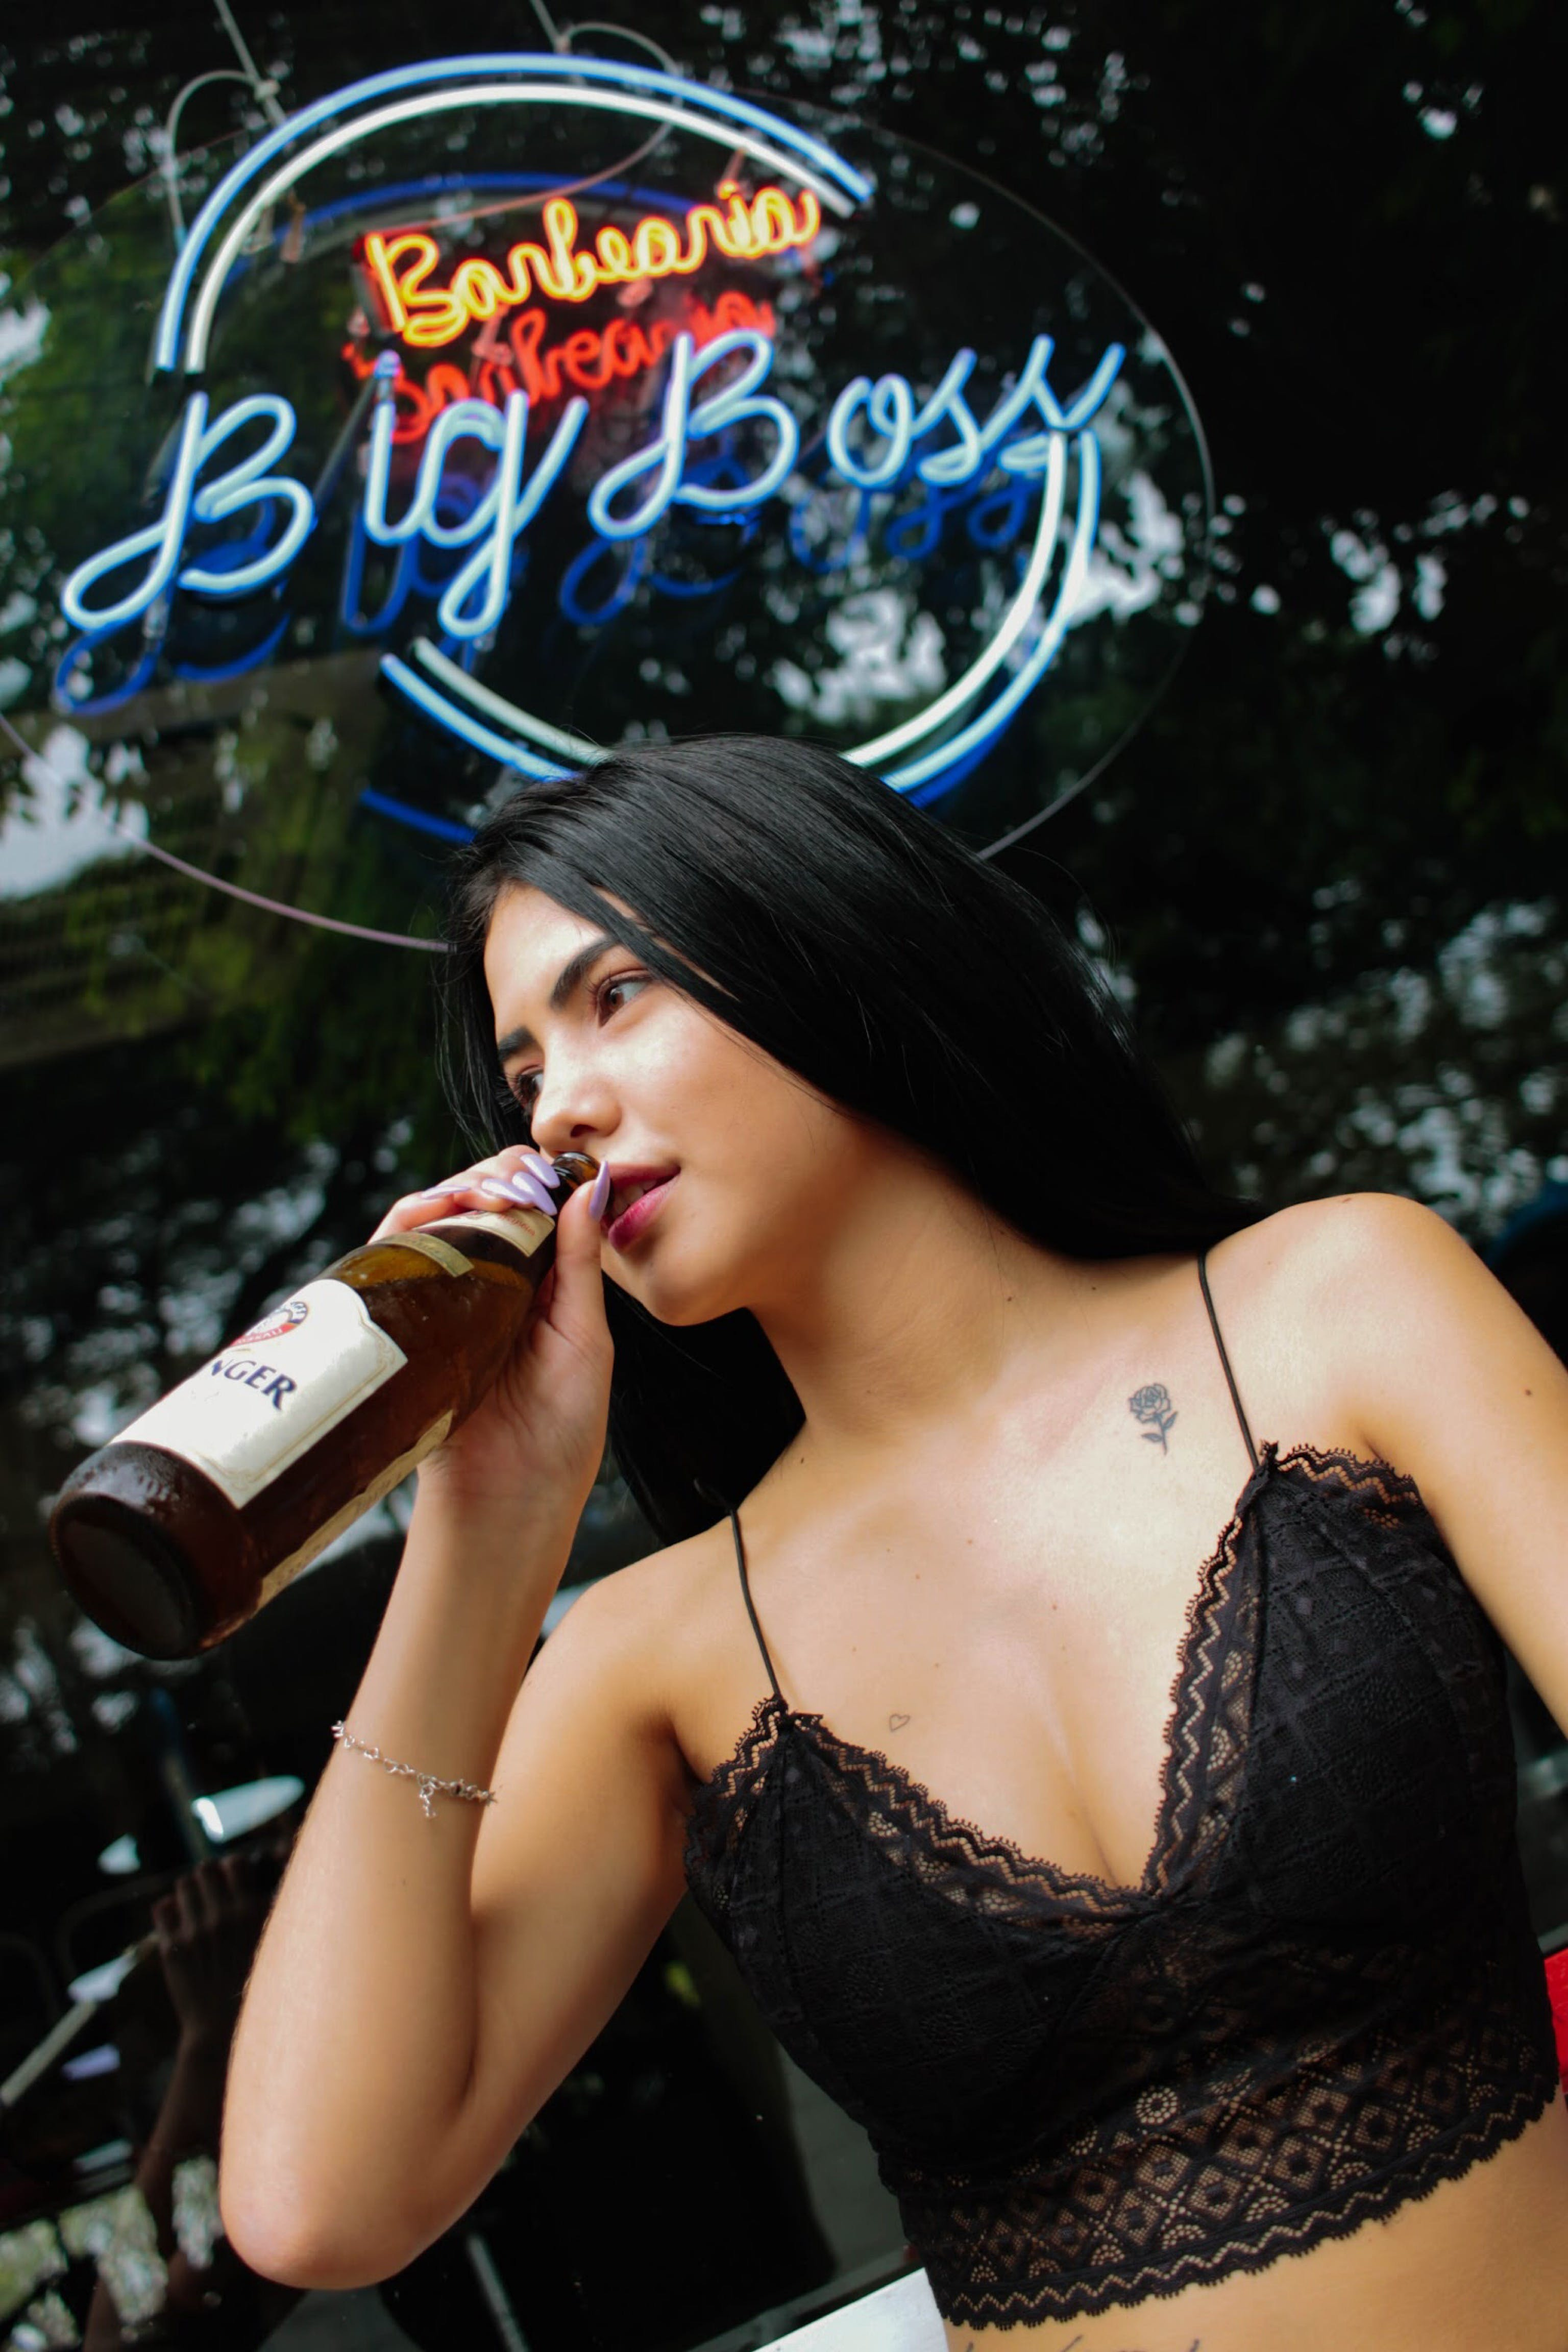 Woman About to Drink Liquor